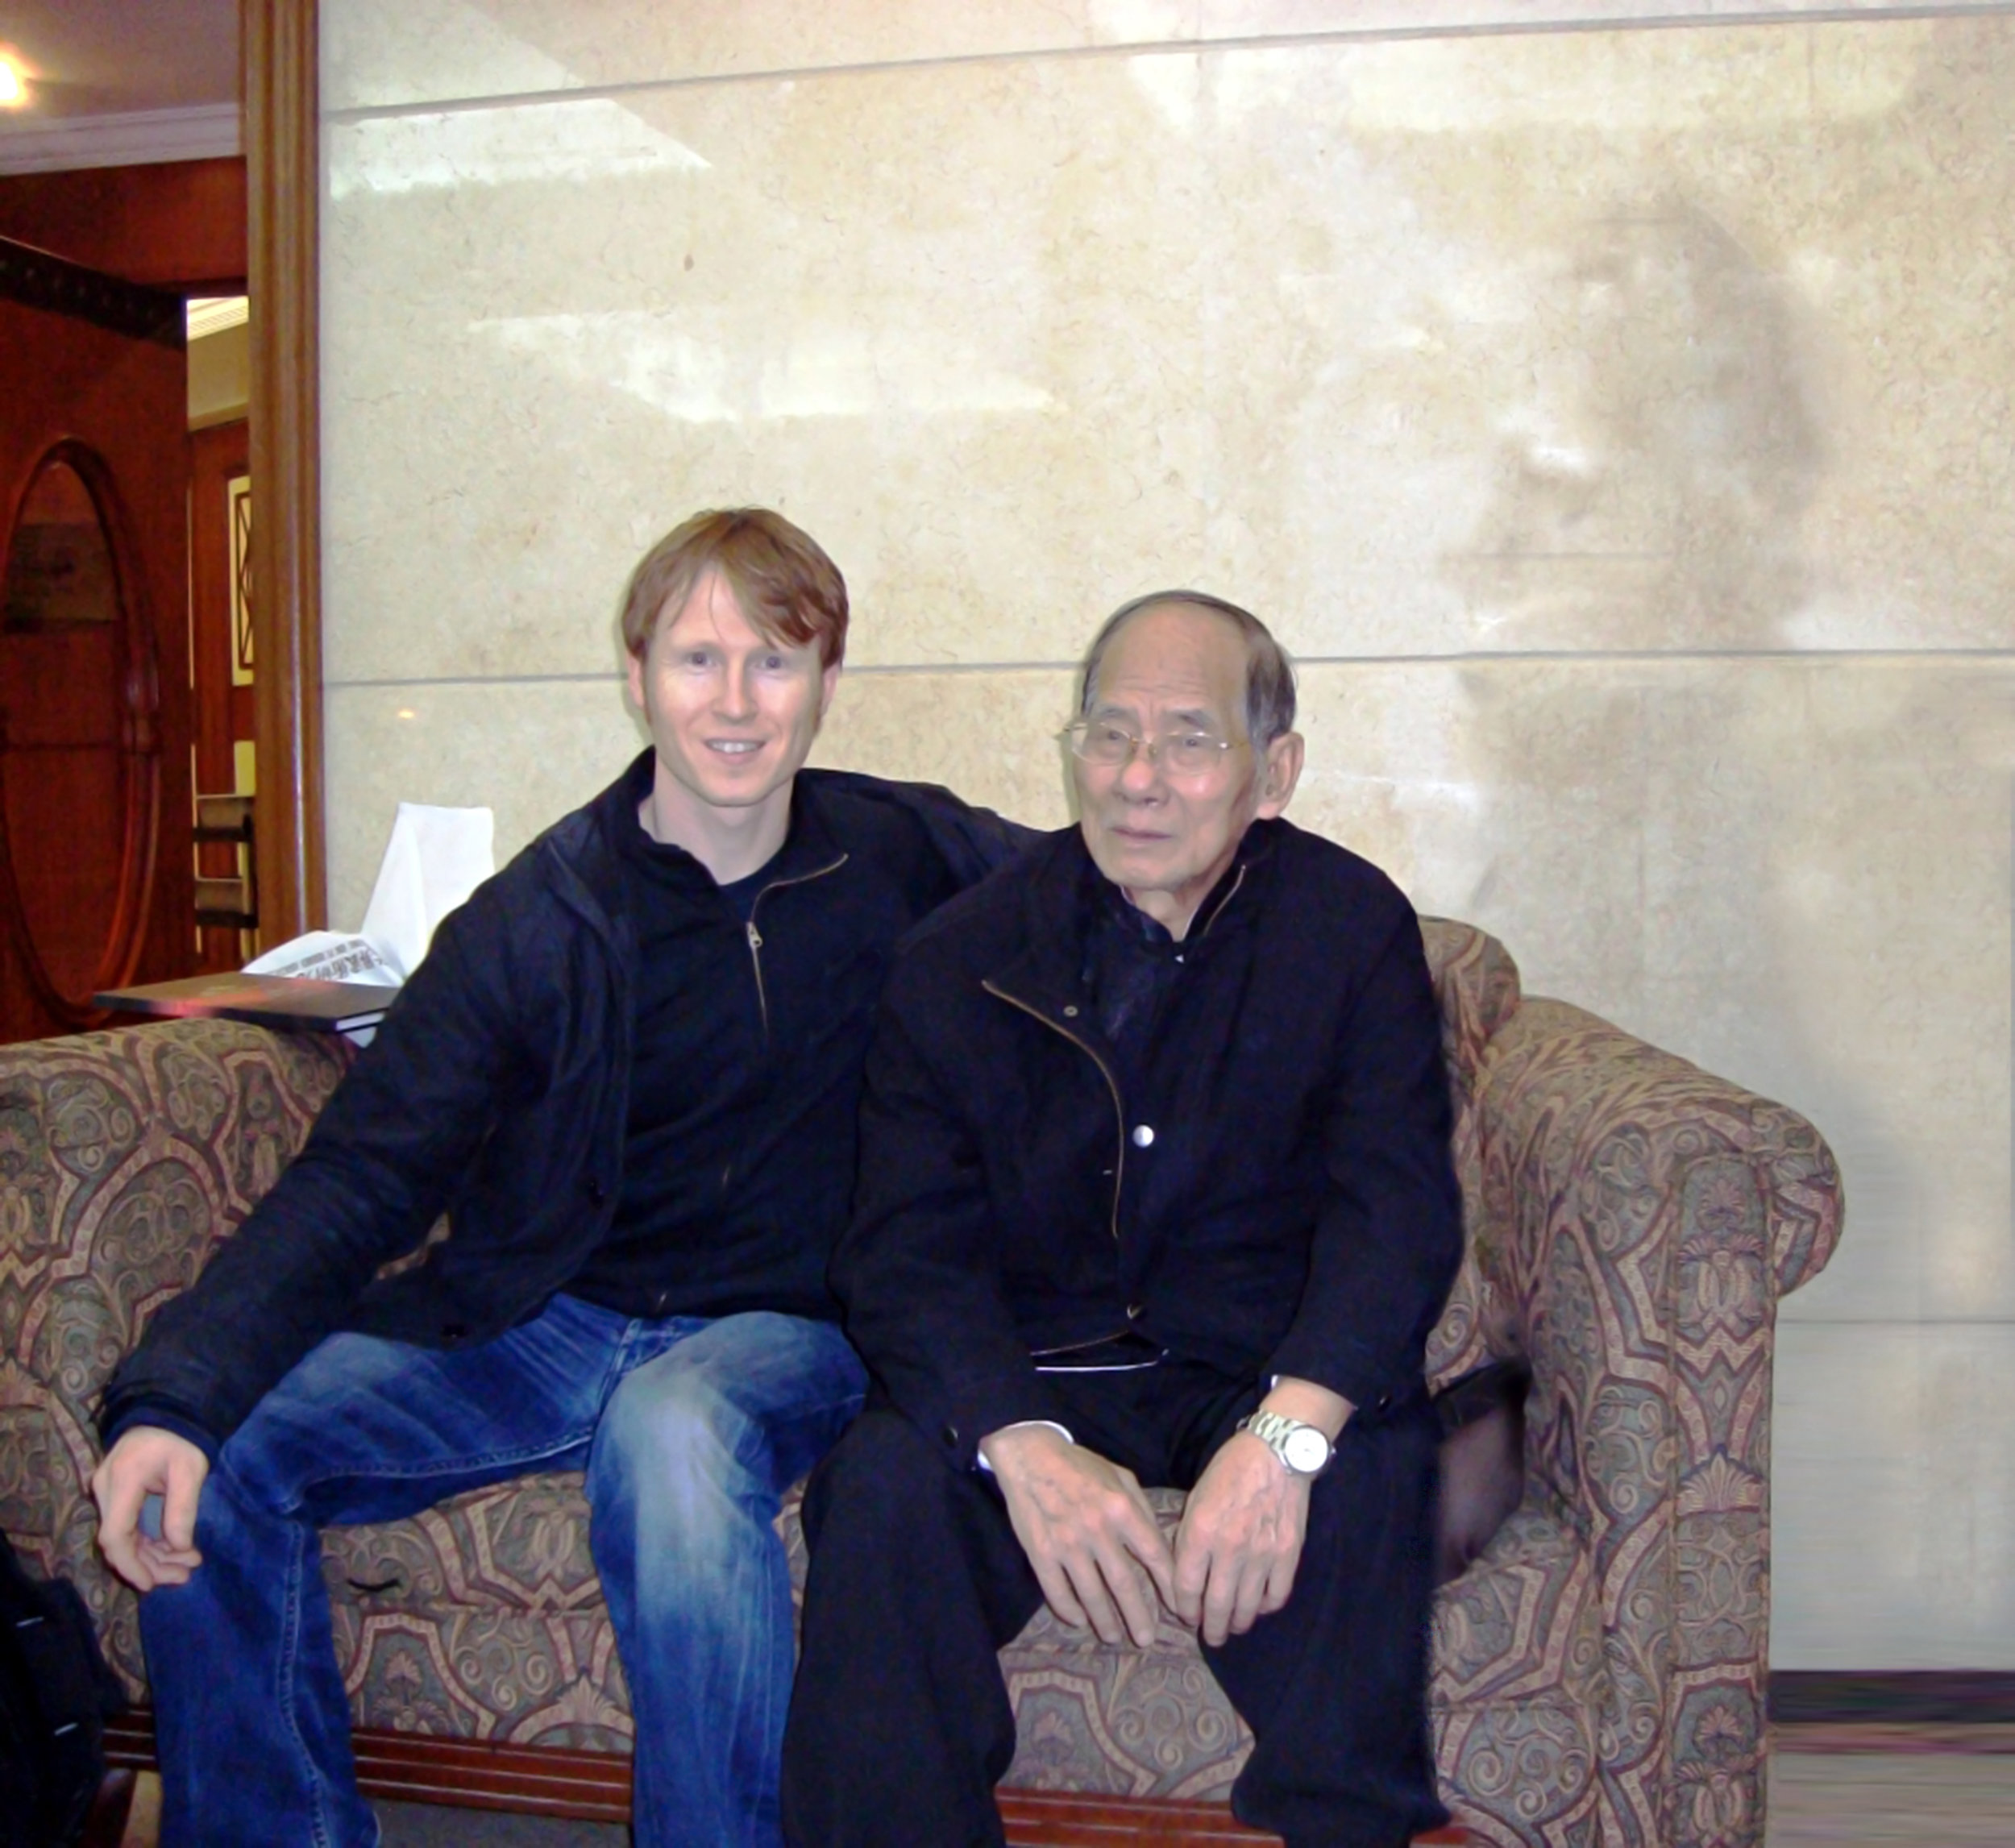 Niel with Great Grandmaster Wong Gong the Keep of the Jiangmen lineage of Lohan.